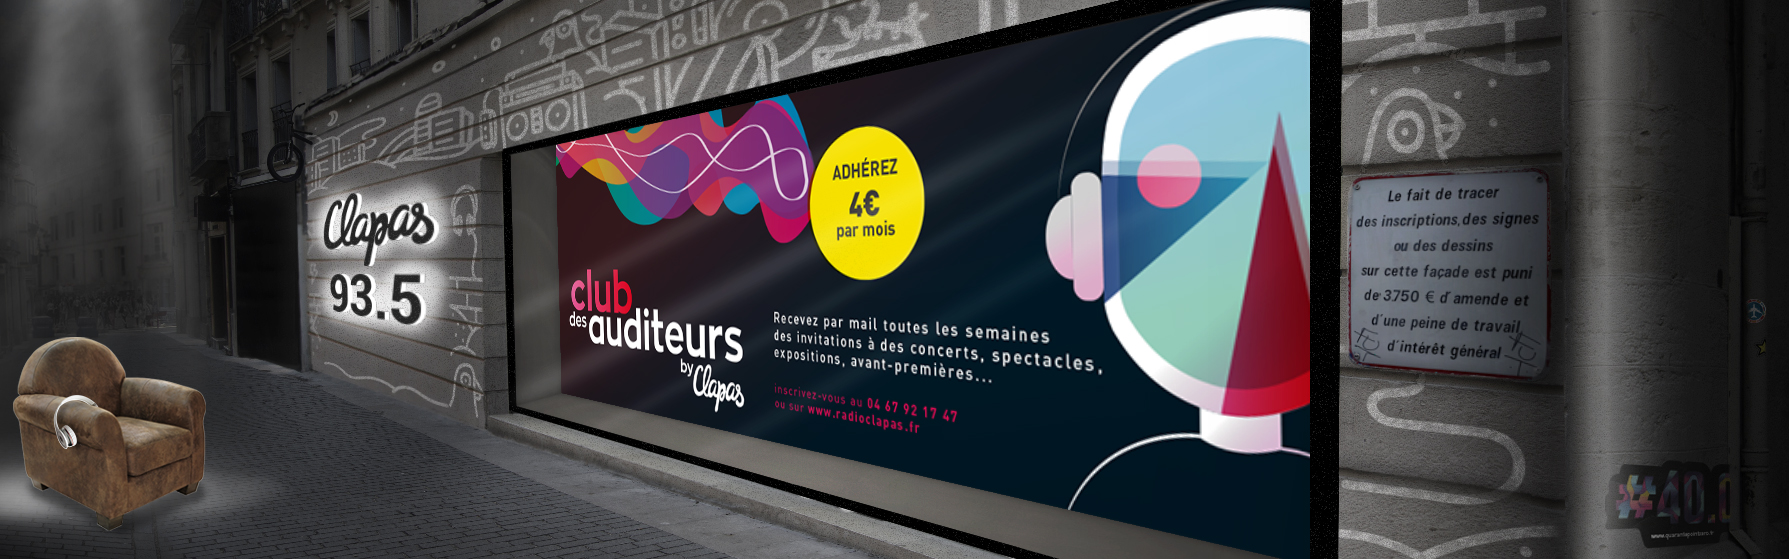 slider club des auditeurs